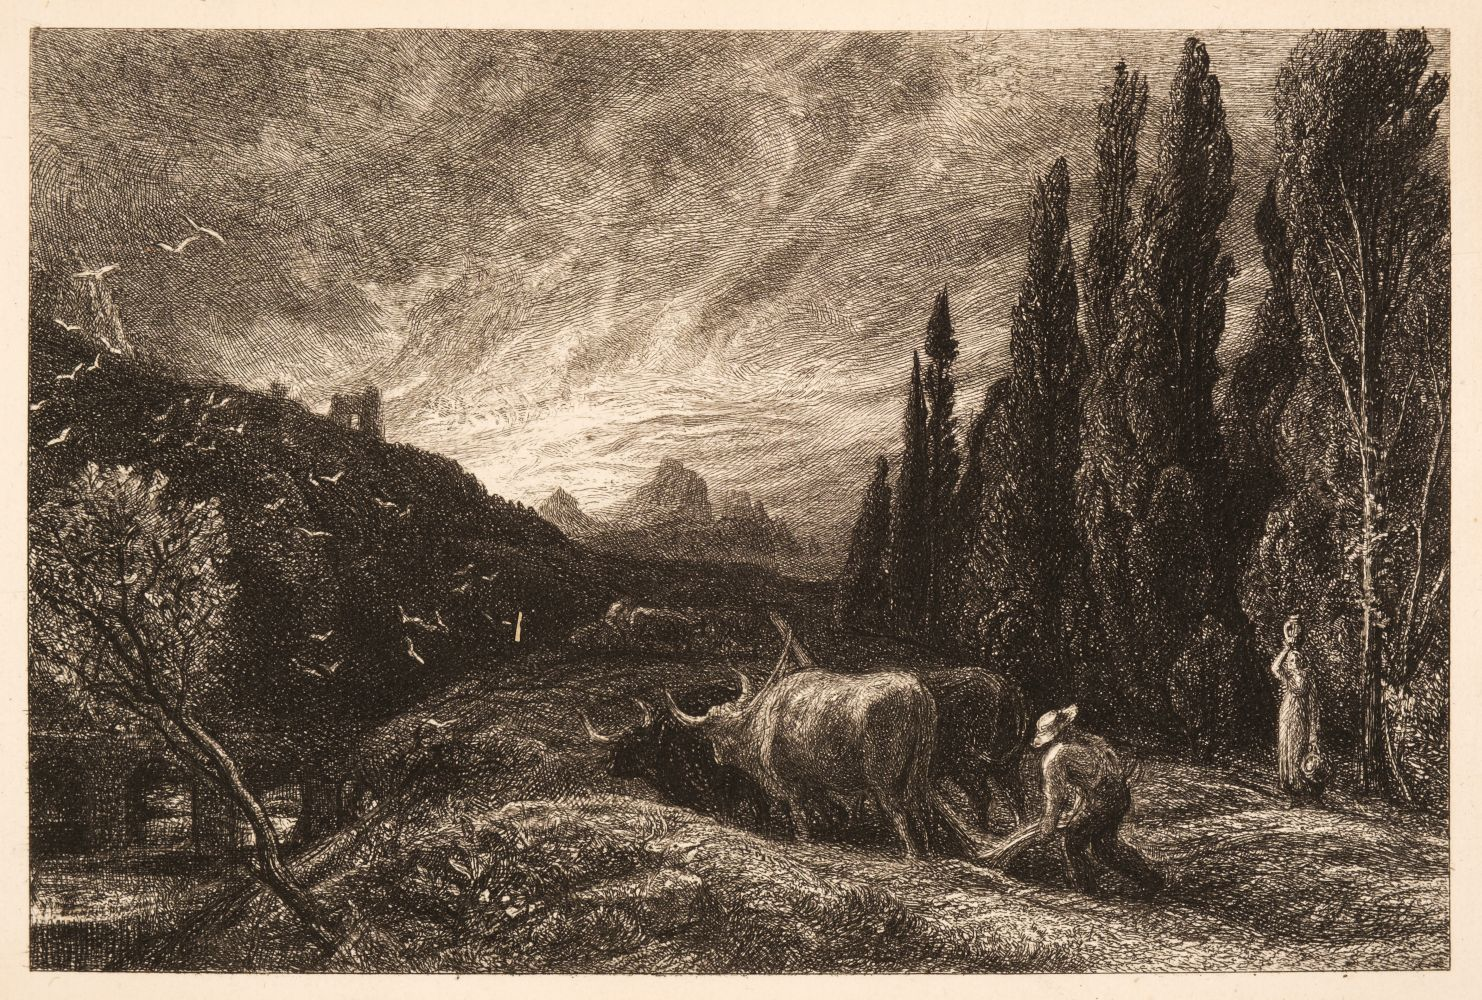 * Palmer (Samuel, 1805-1881). The Early Ploughman or The Morning Spread upon the Mountains, 1861